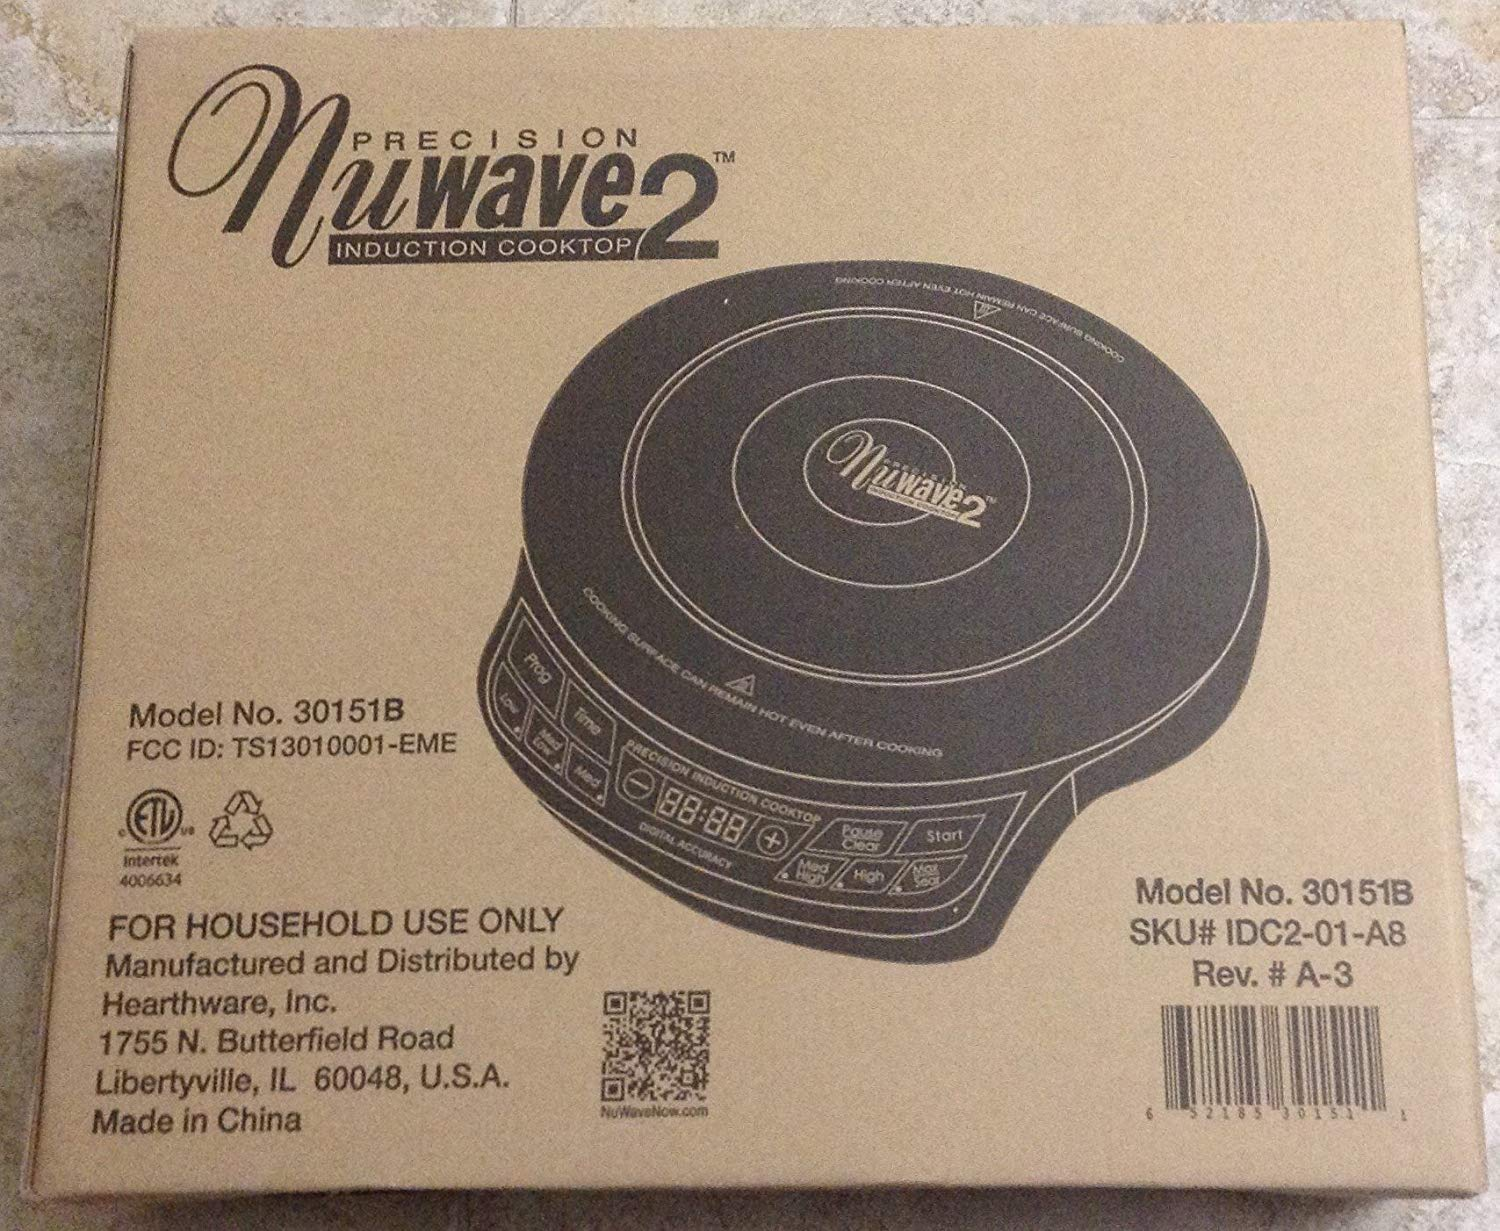 Precision Nuwave 2 Induction Cooktop - 30151B